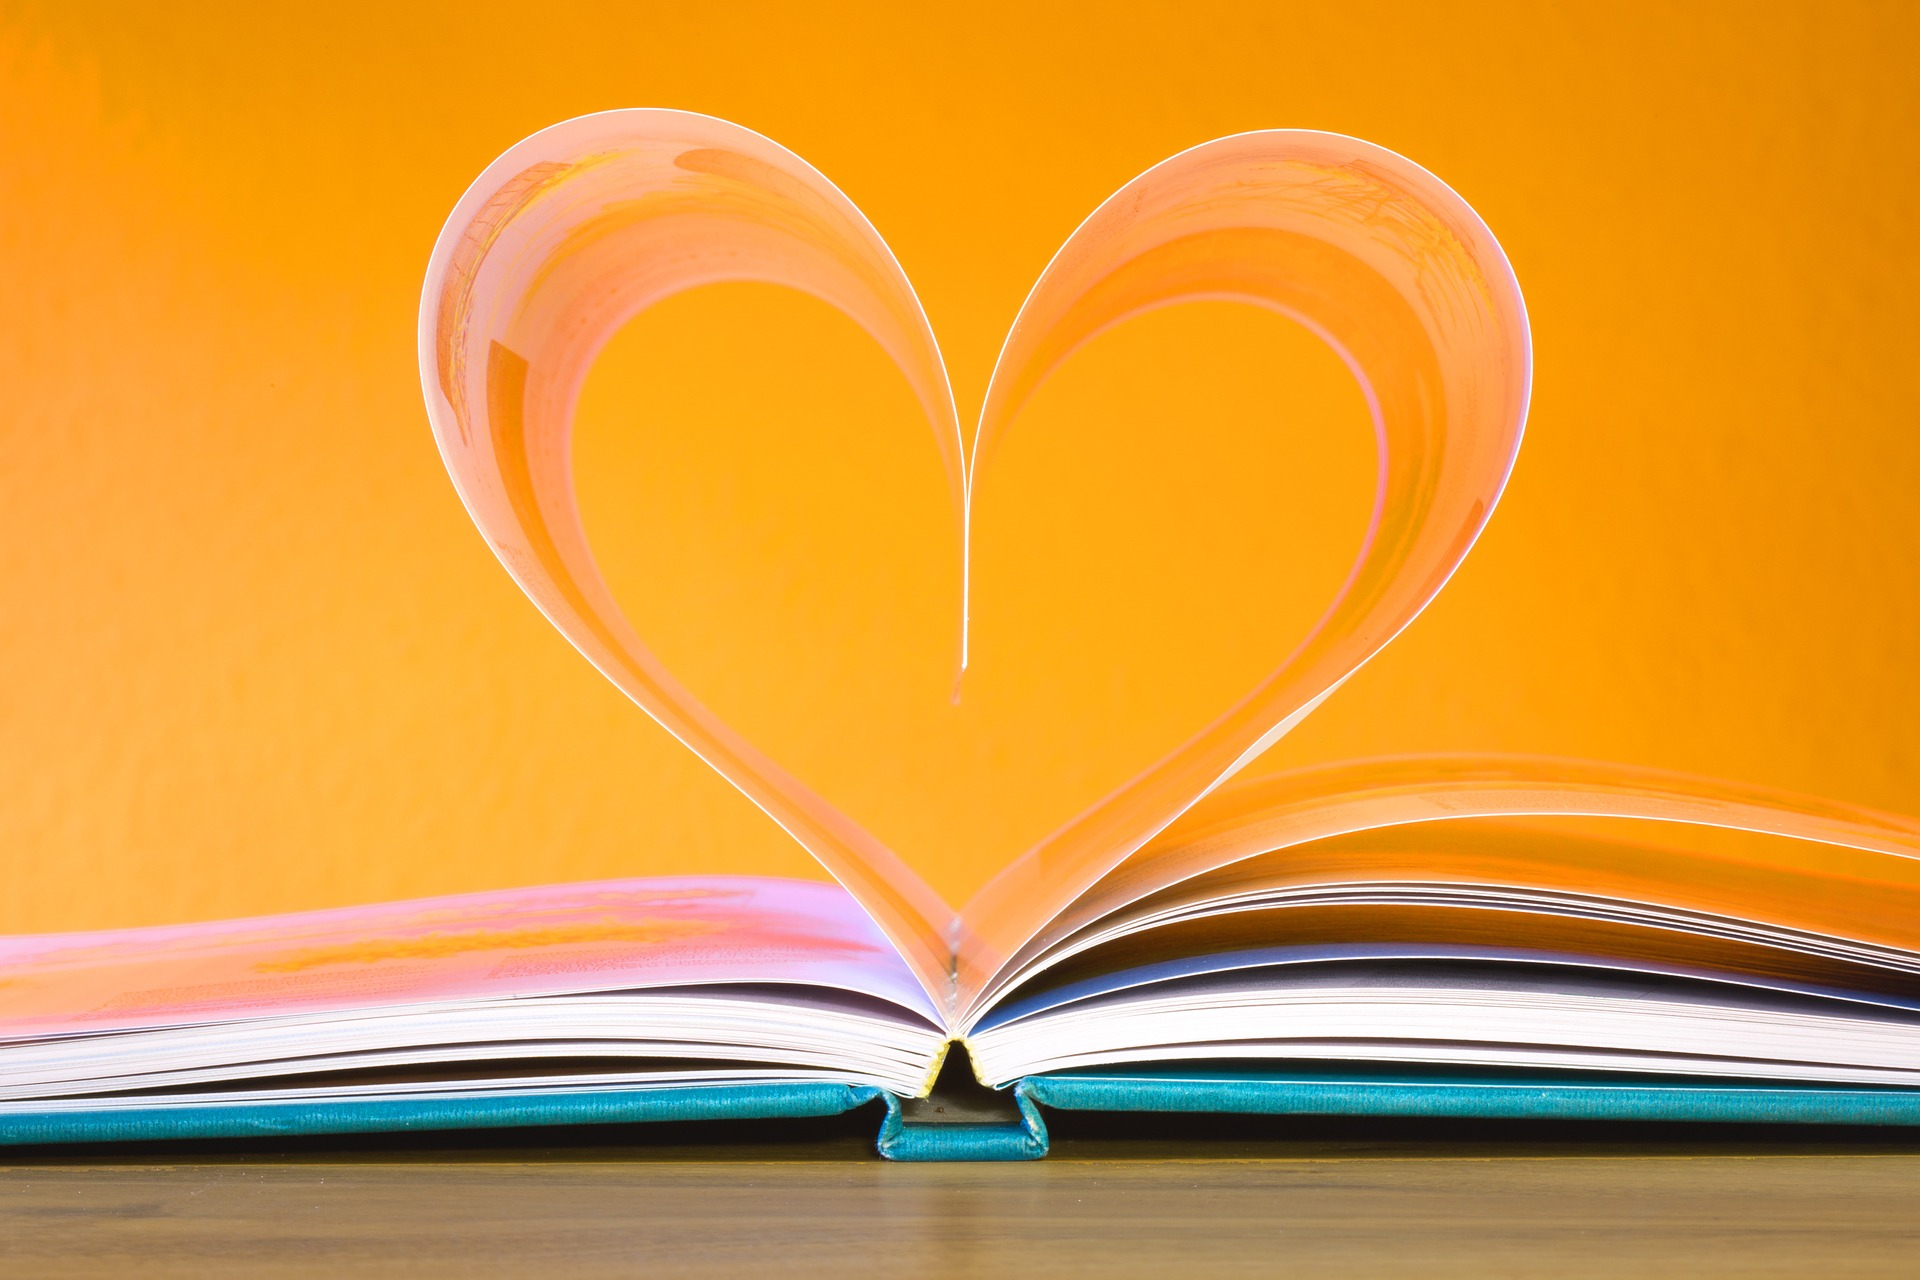 A book with it's pages forming a heart shape